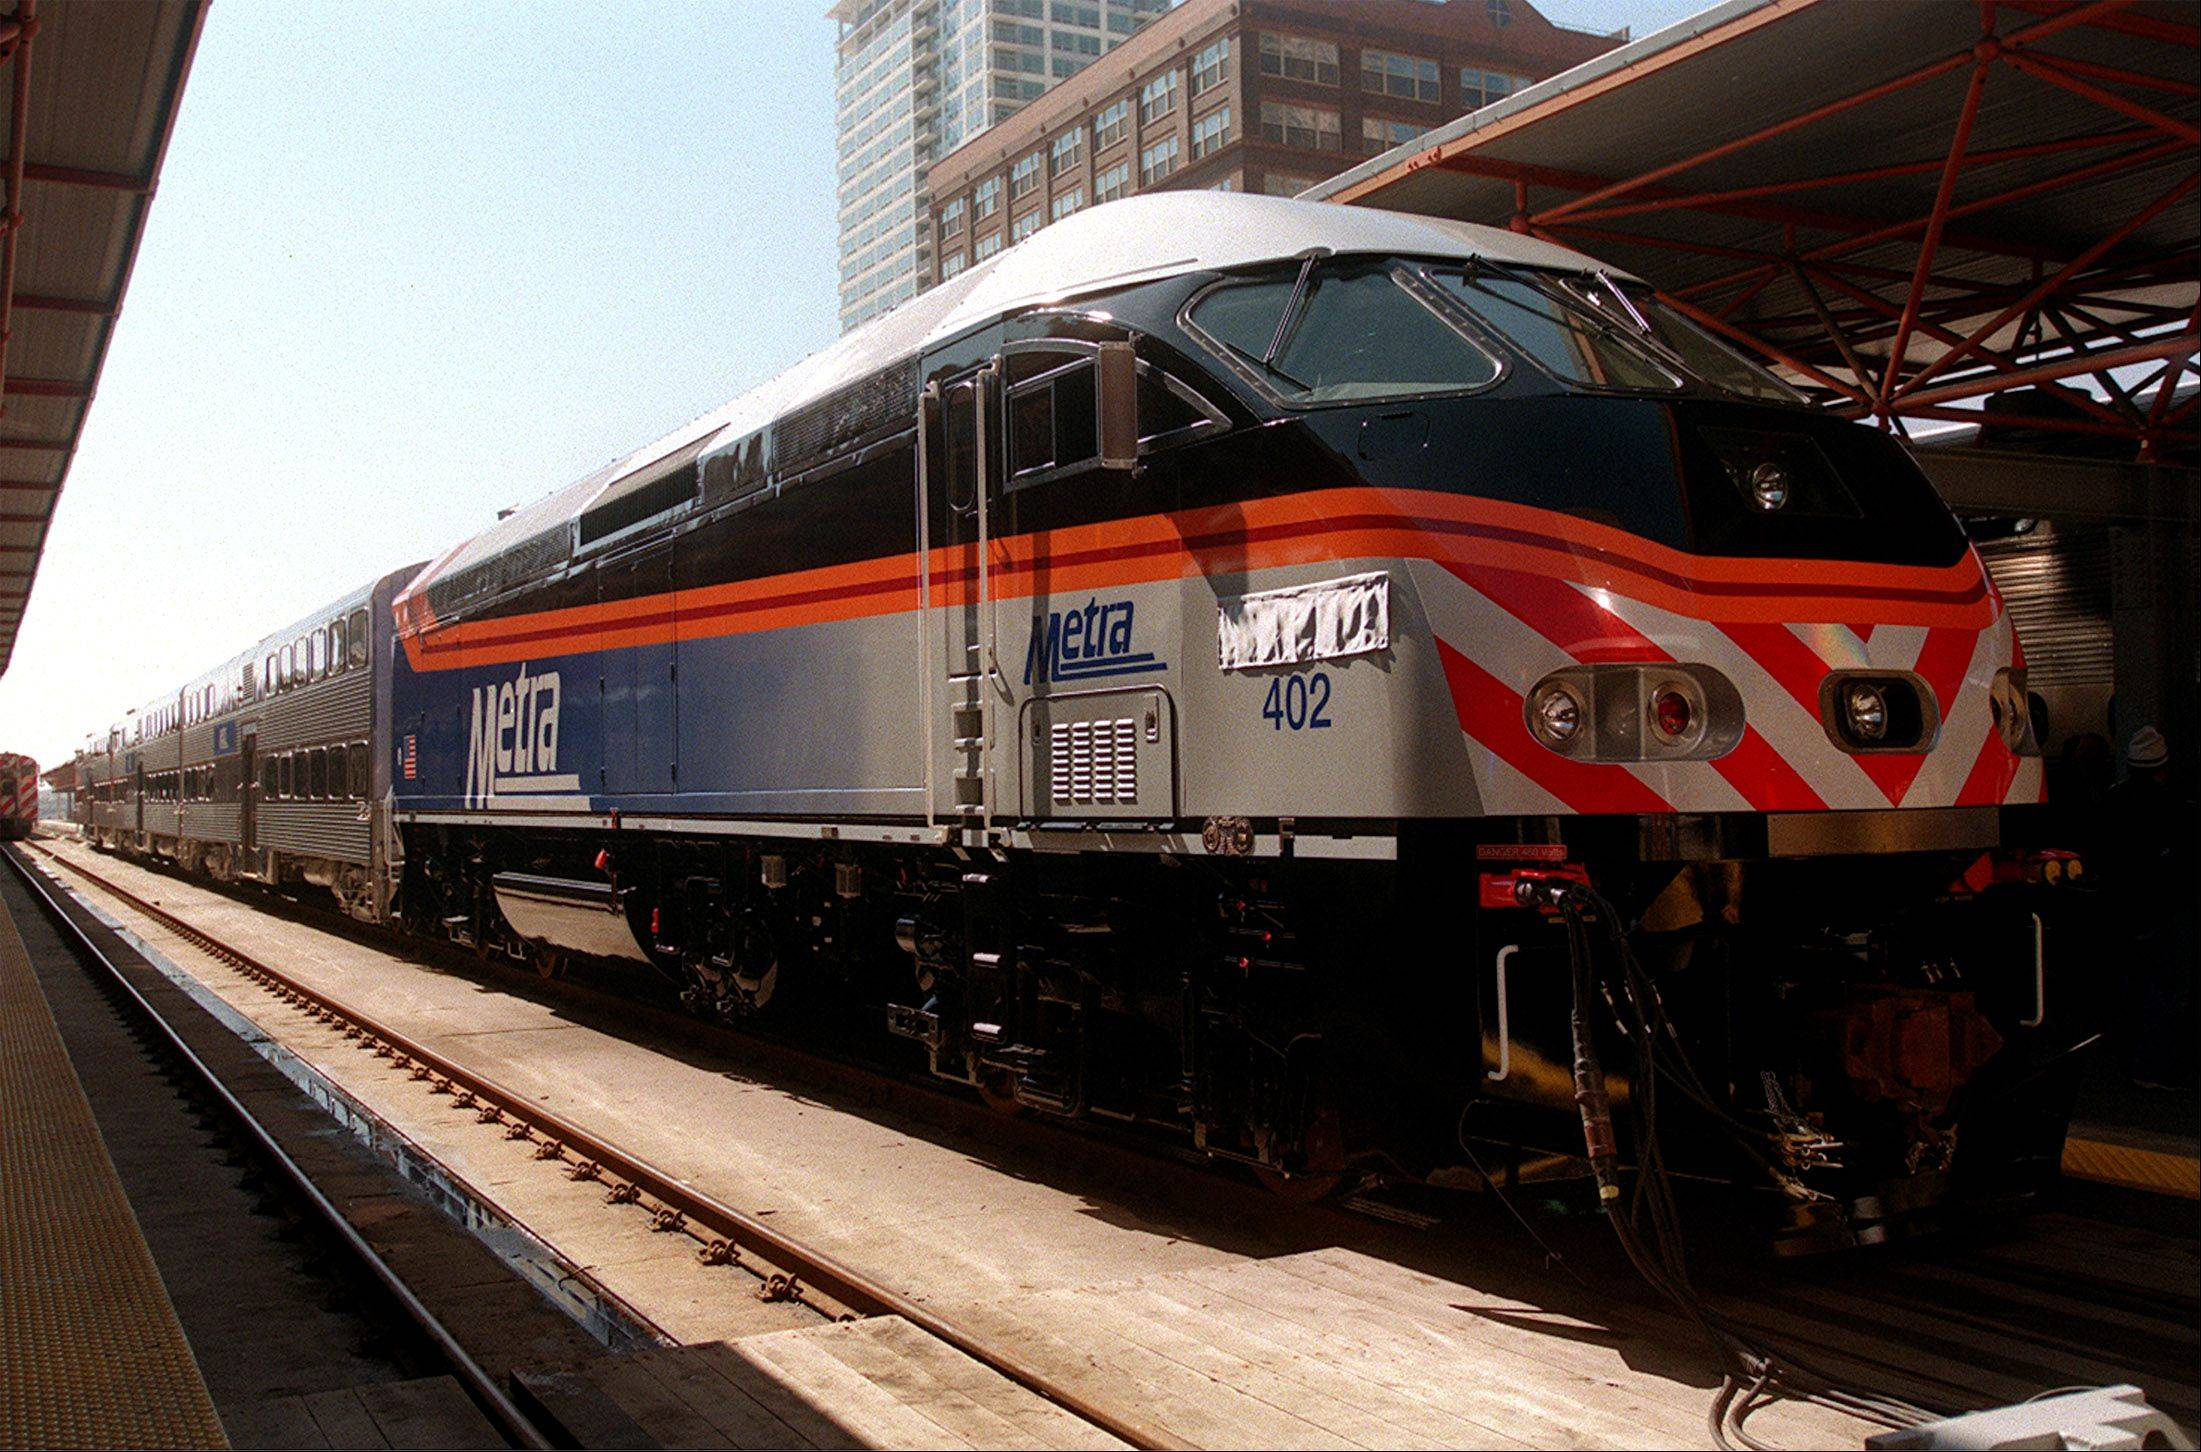 The heads of mass transit agencies around Chicago are getting a chance to give public testimony in front of a panel charged with reforming transportation in the region.